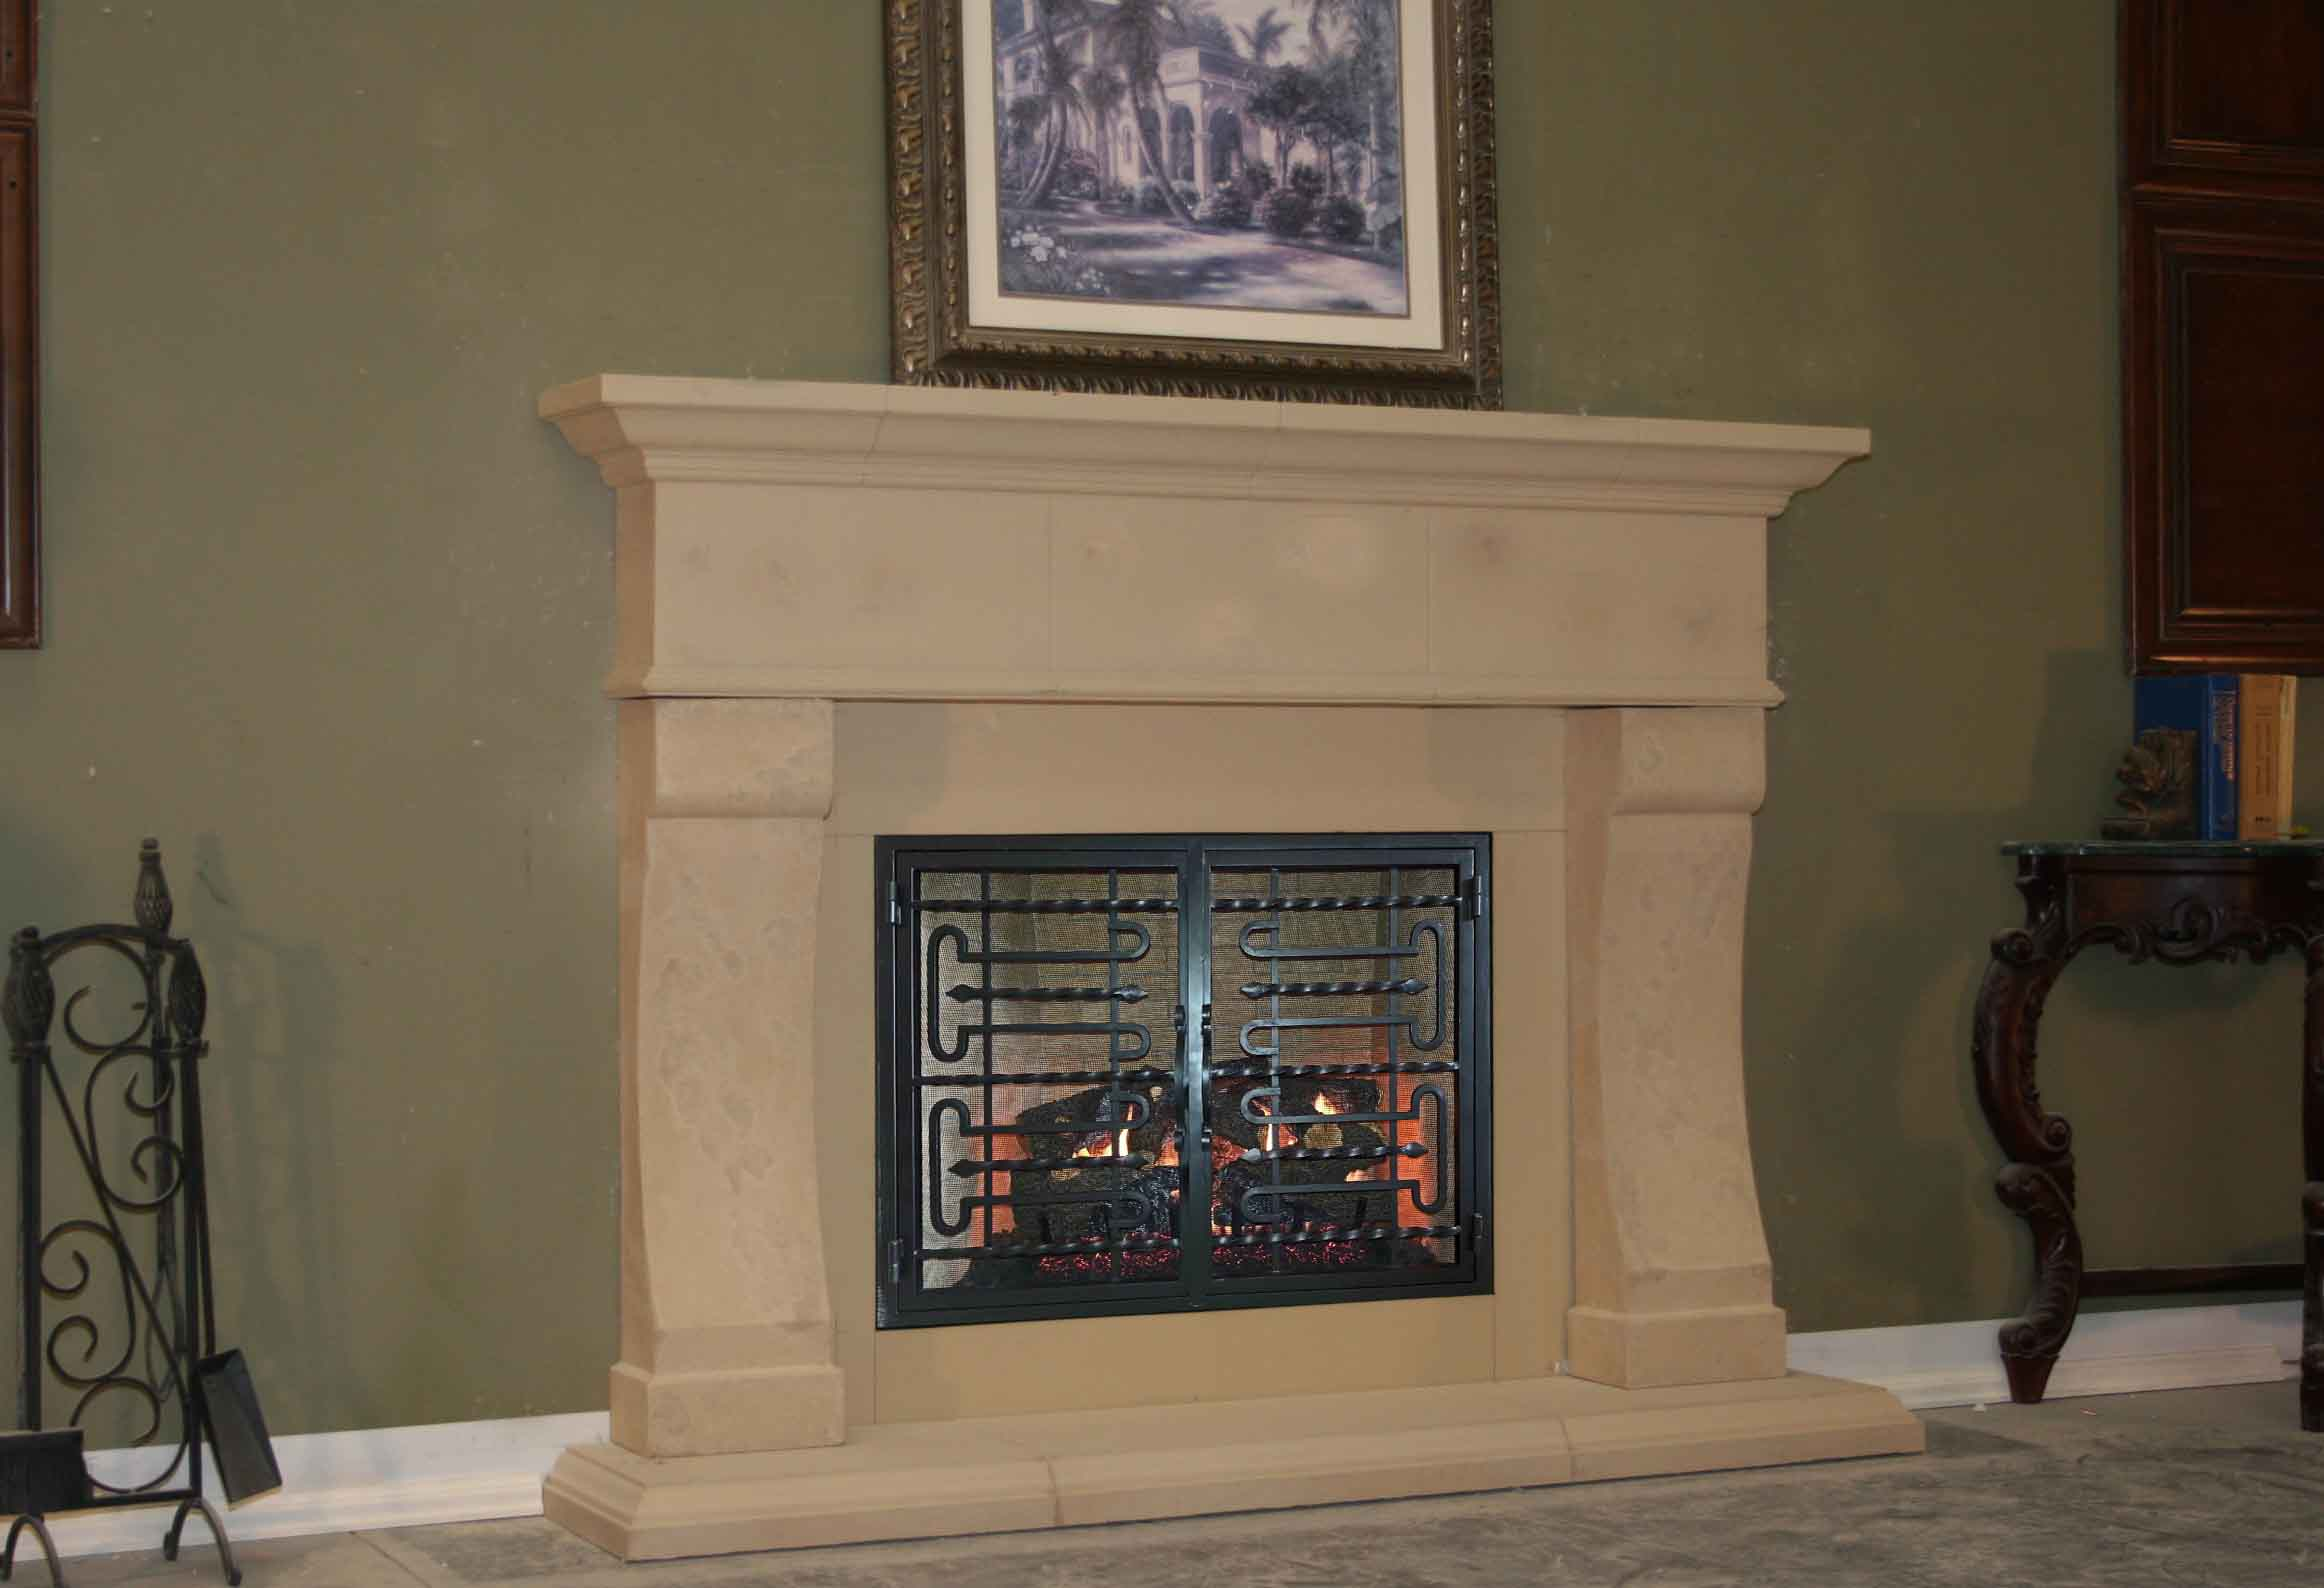 Mt236 Fireplace Mantels Fireplace Surrounds Iron Fireplace Doors And Screens In San Diego